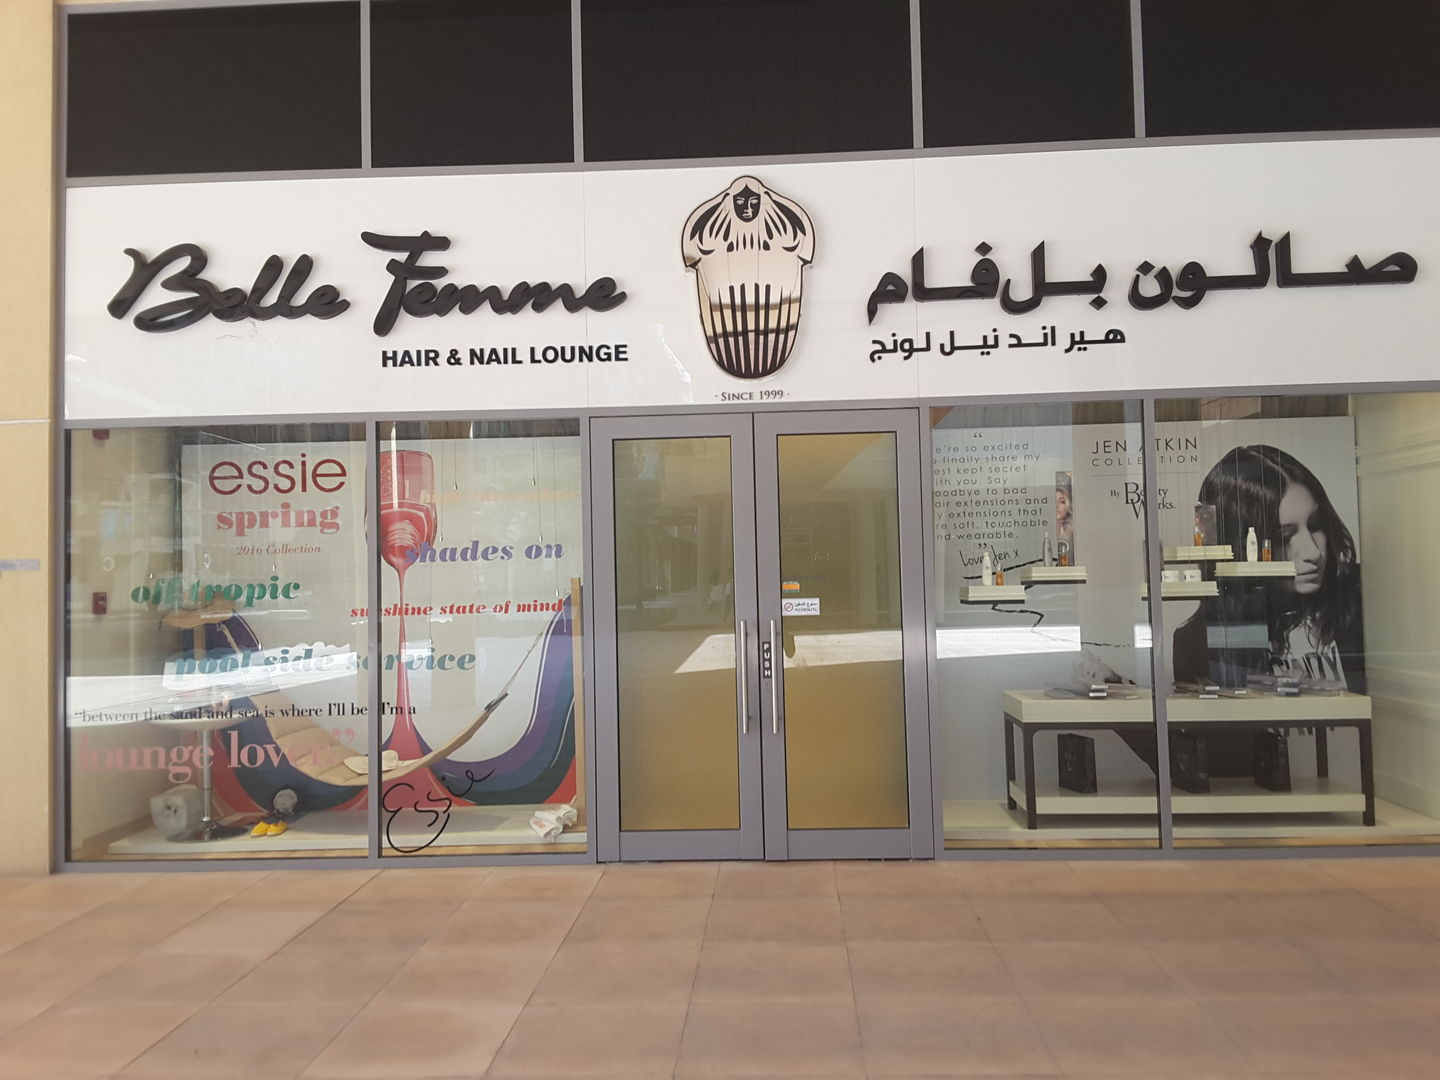 HiDubai-business-belle-femme-hair-nail-lounge-beauty-wellness-health-wellness-services-spas-business-bay-dubai-2